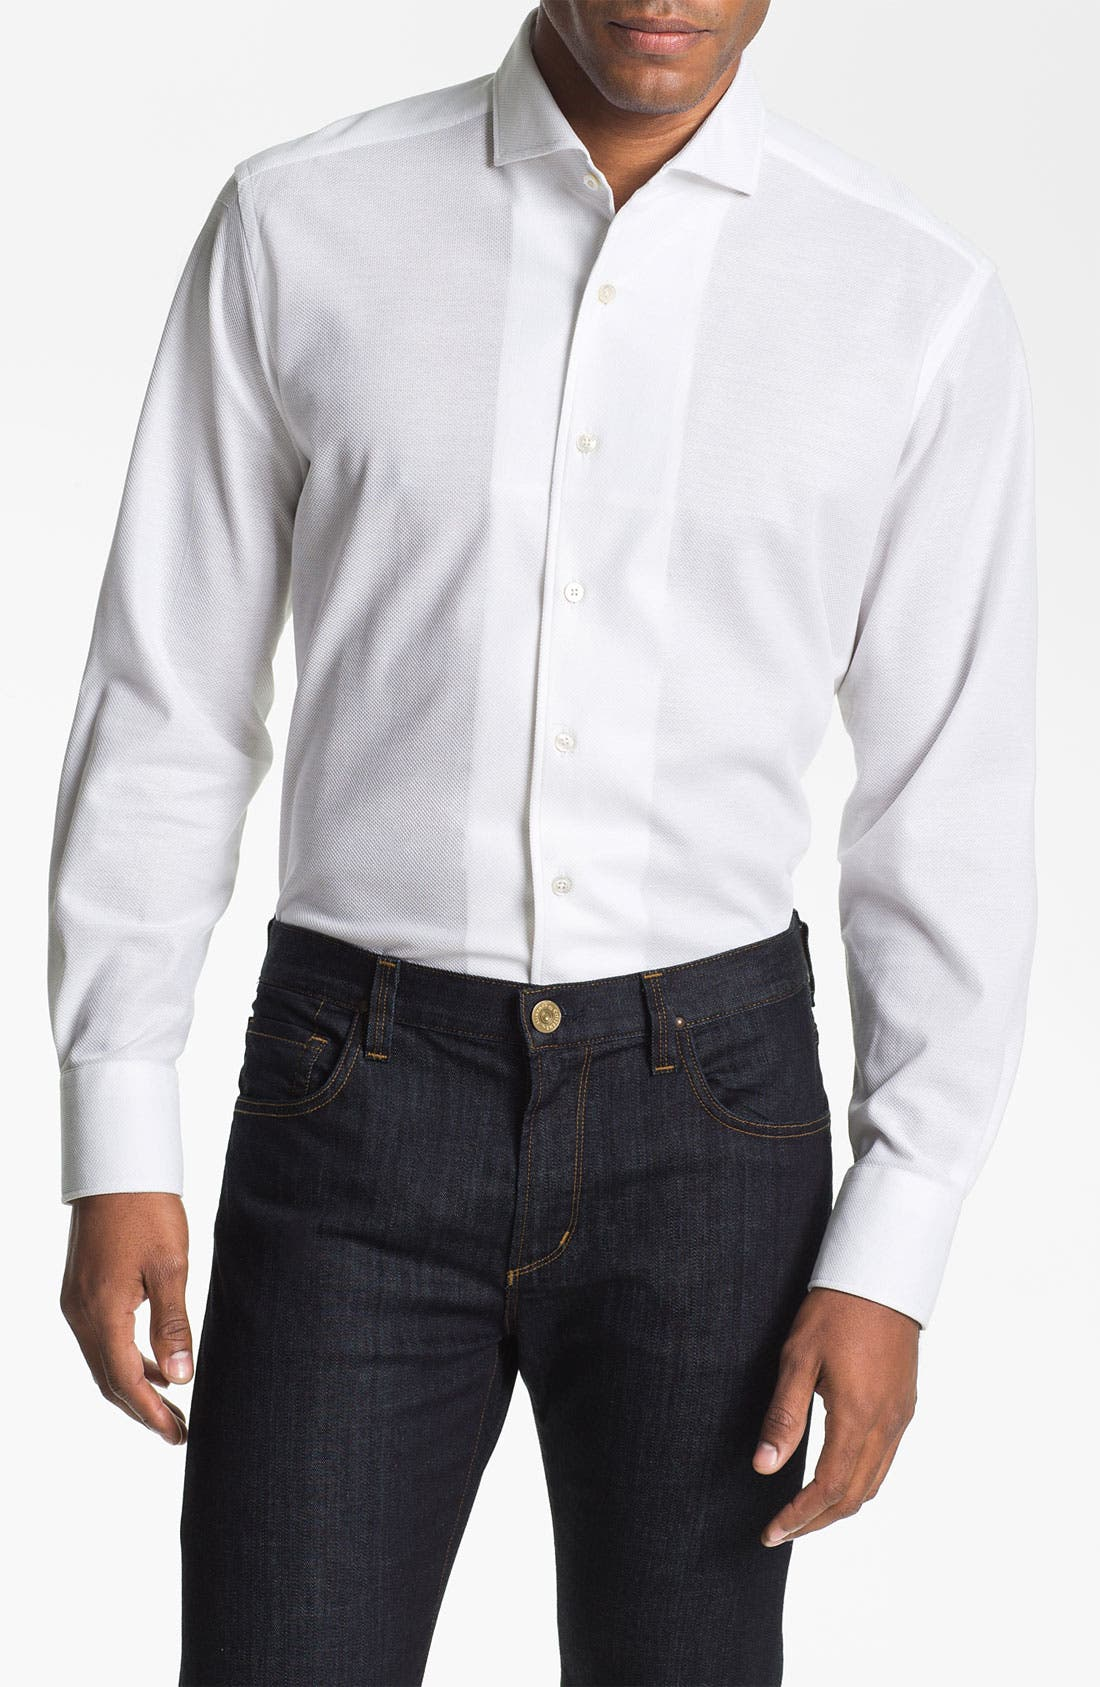 Alternate Image 1 Selected - Canali Regular Fit Knit Italian Sport Shirt